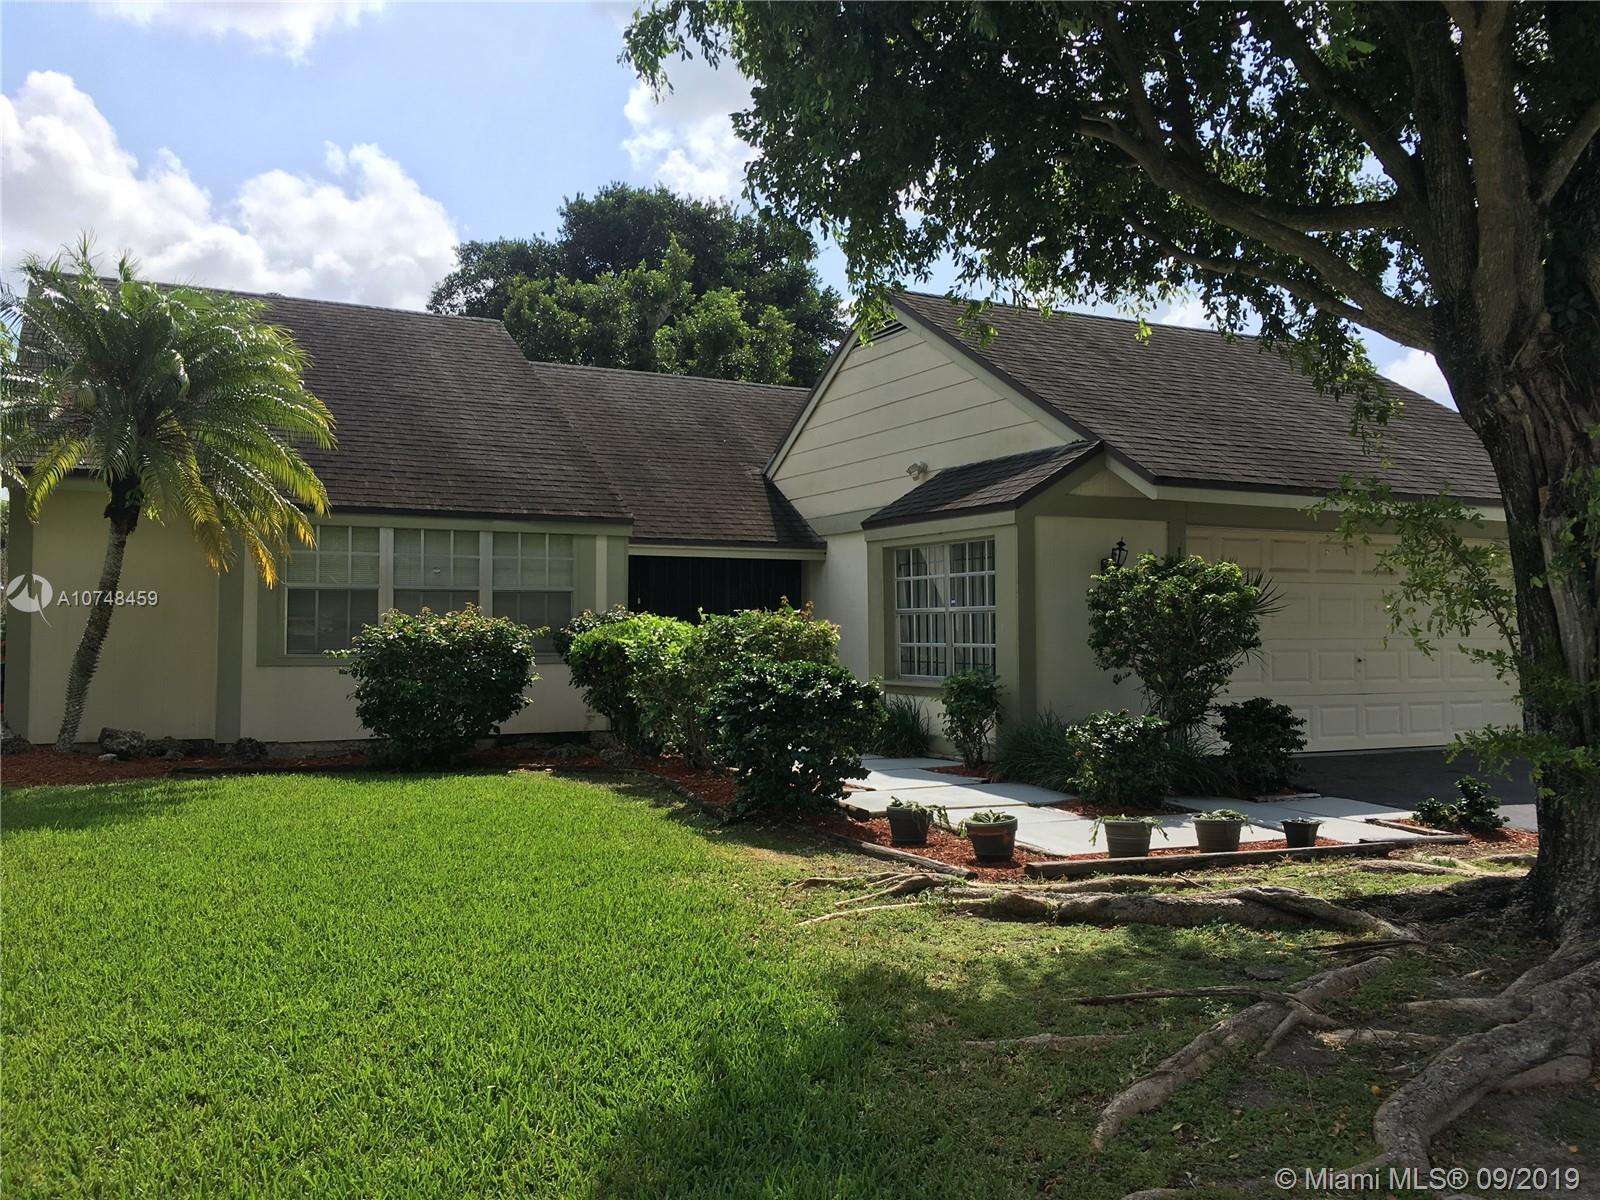 1203 Egret Rd, Homestead, Florida